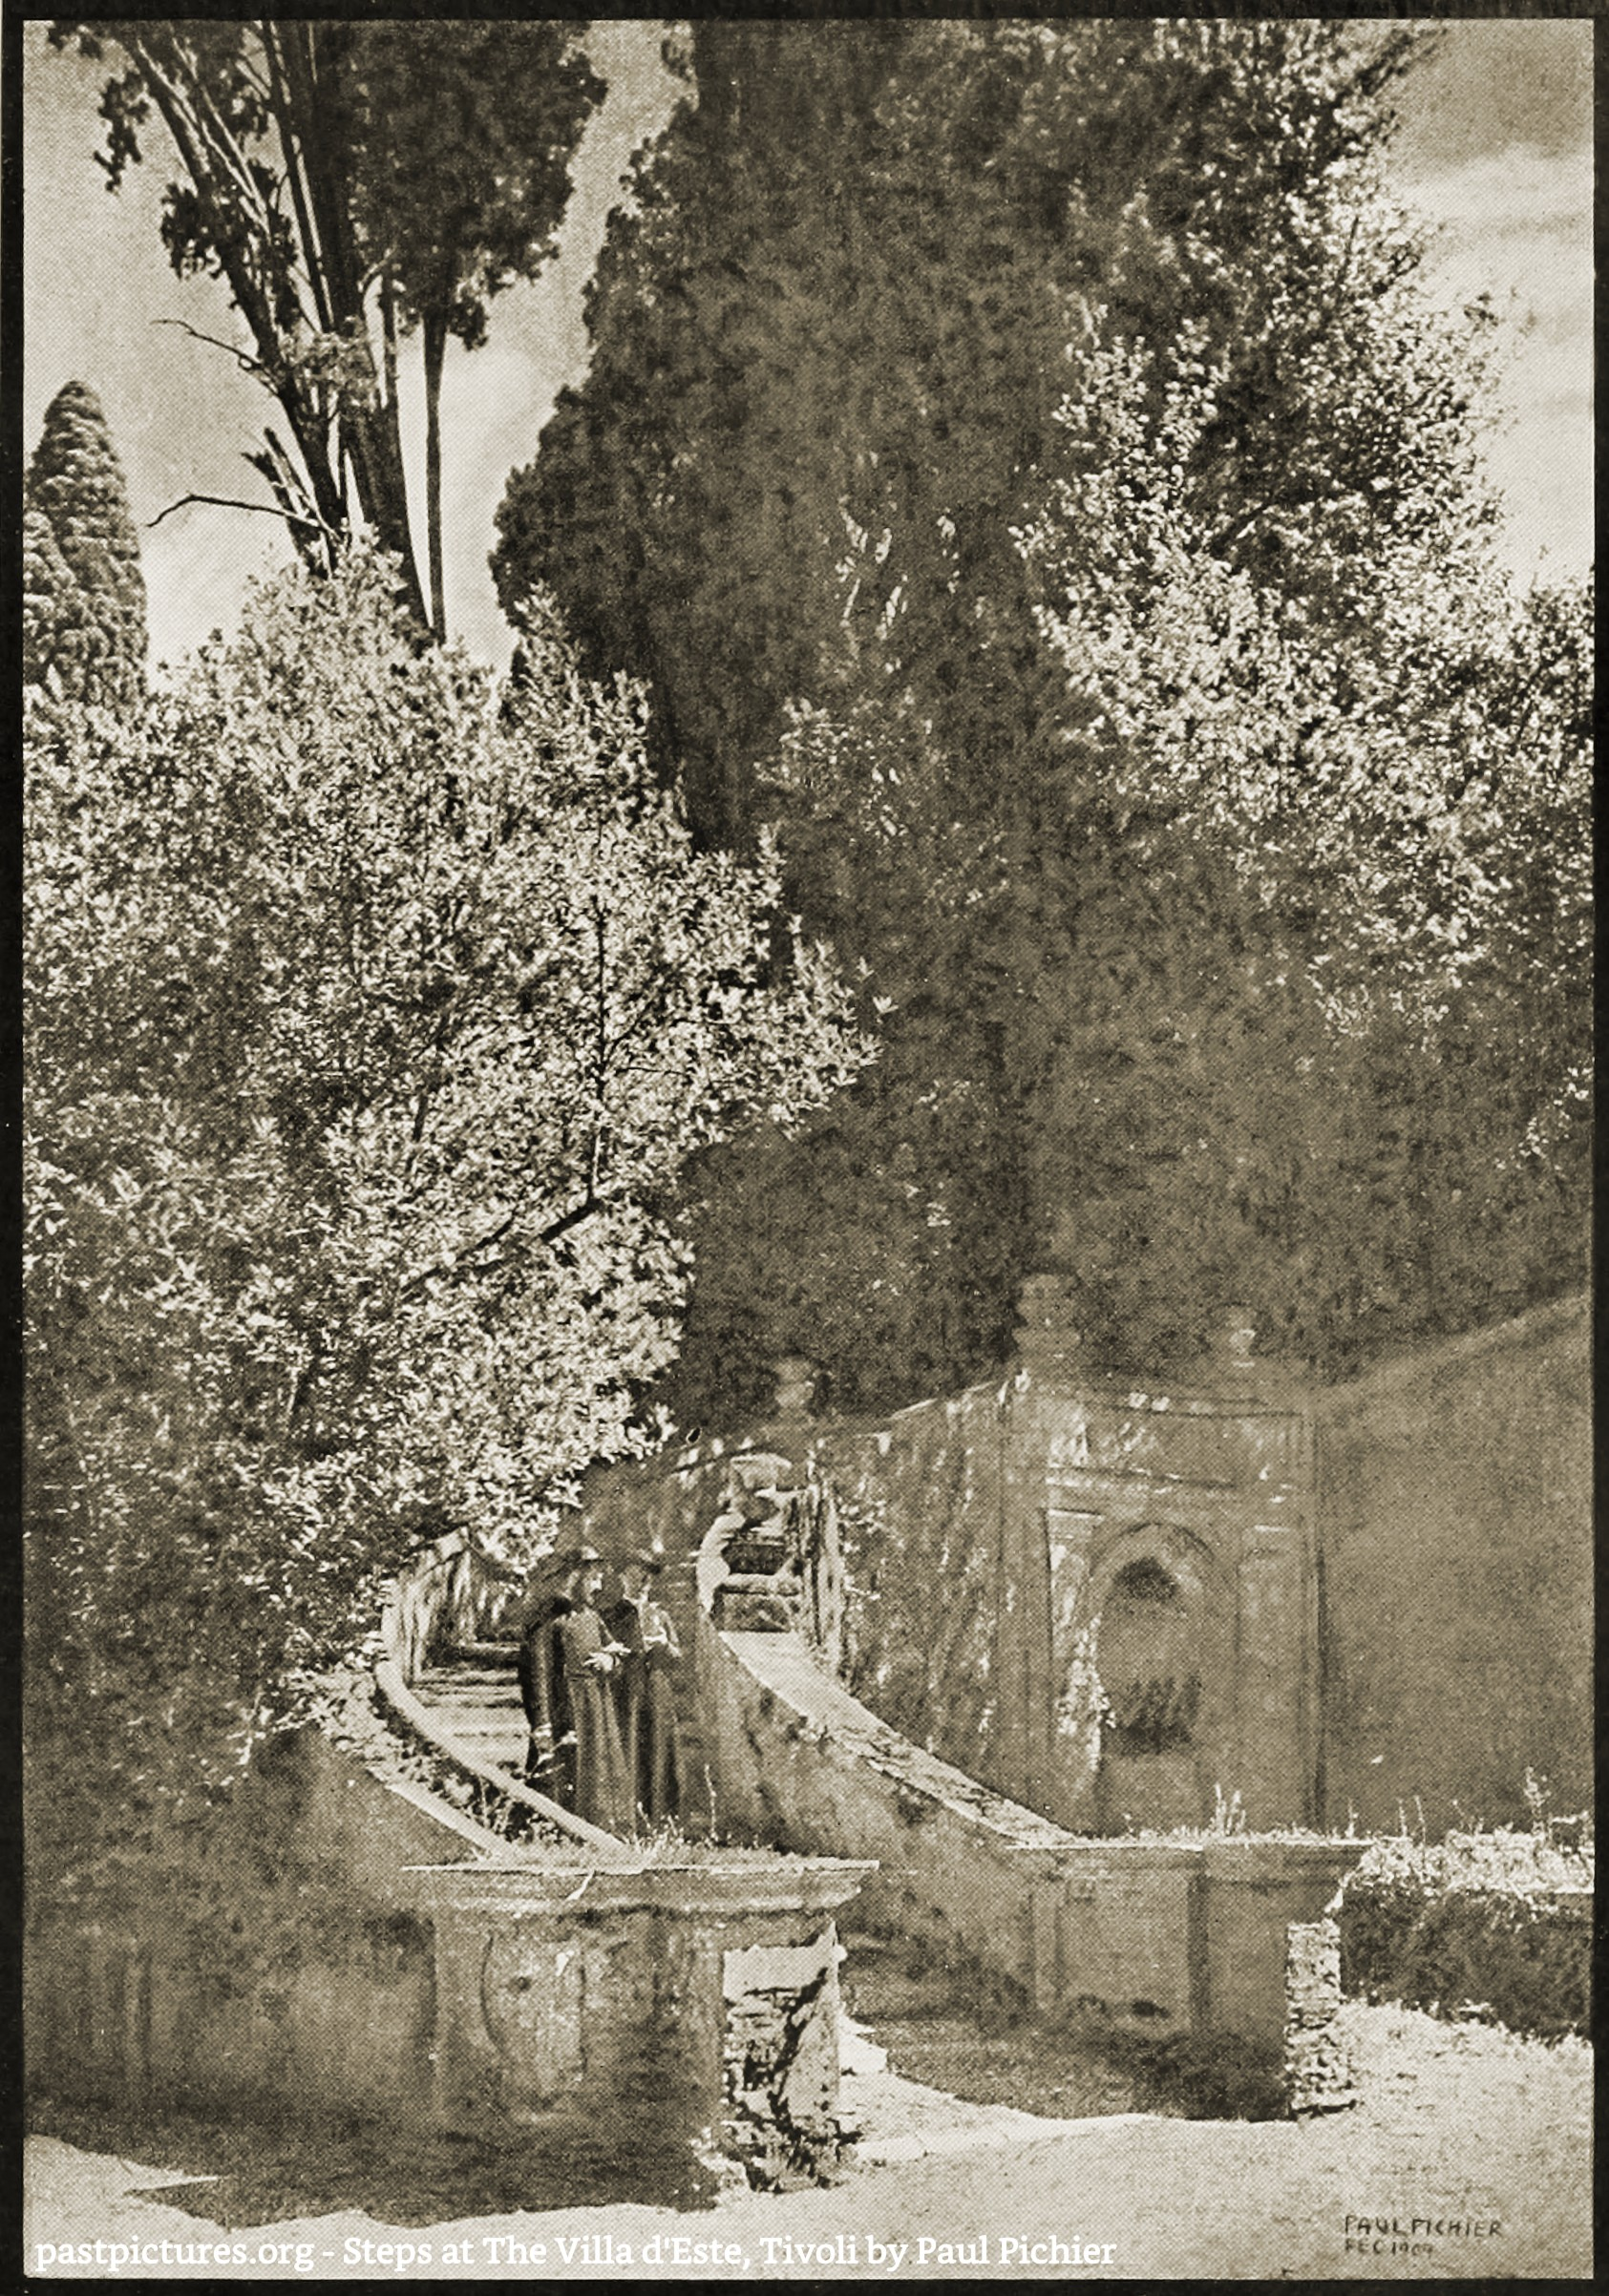 Steps at The Villa d'Este, Tivoli by Paul Pichier 1907